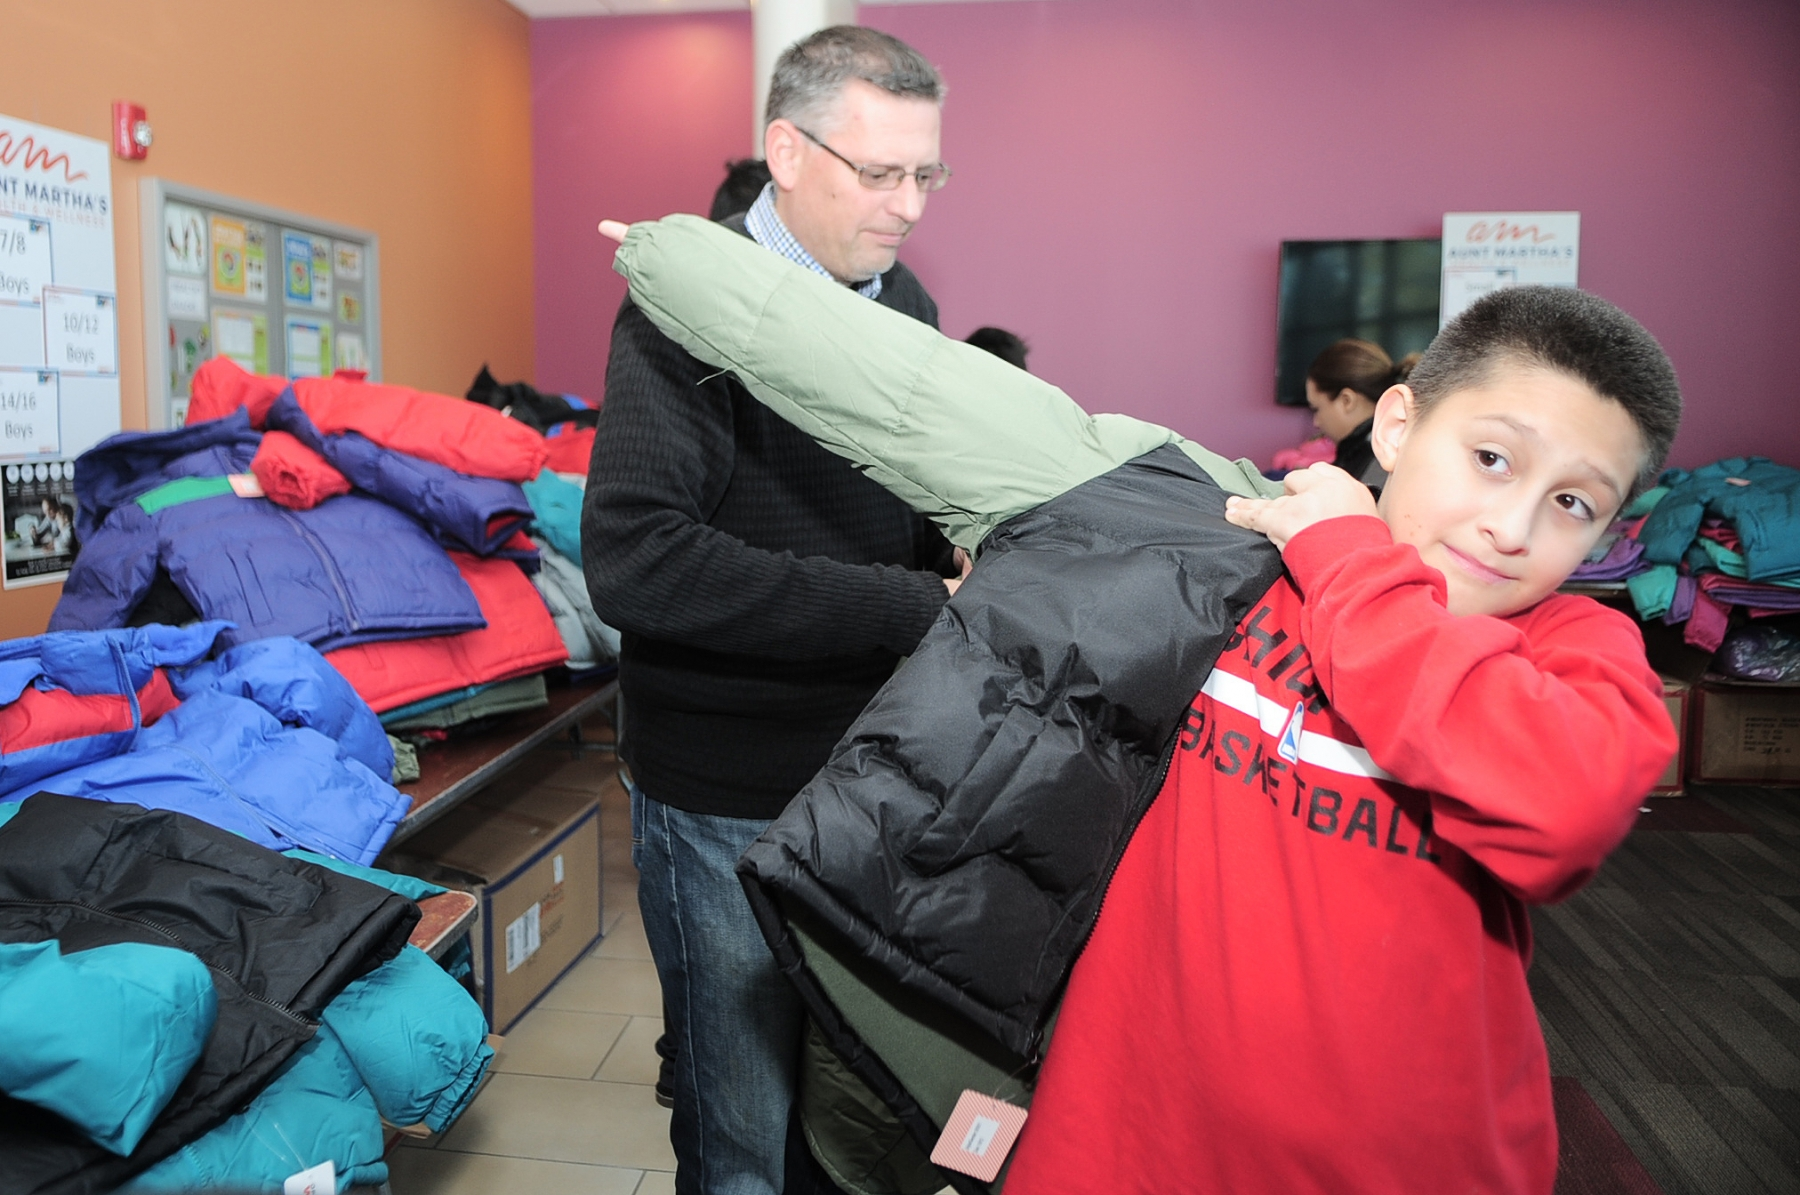 10-20-18 Aunt Martha's Clinic, coat drive and flu shots, Joliet IL Eduardo a boy from the Joliet community tries on a free winter coat he selected from the lot of 250 coats that Operation Warm gave away at Aunt Martha's Photo by John Booz